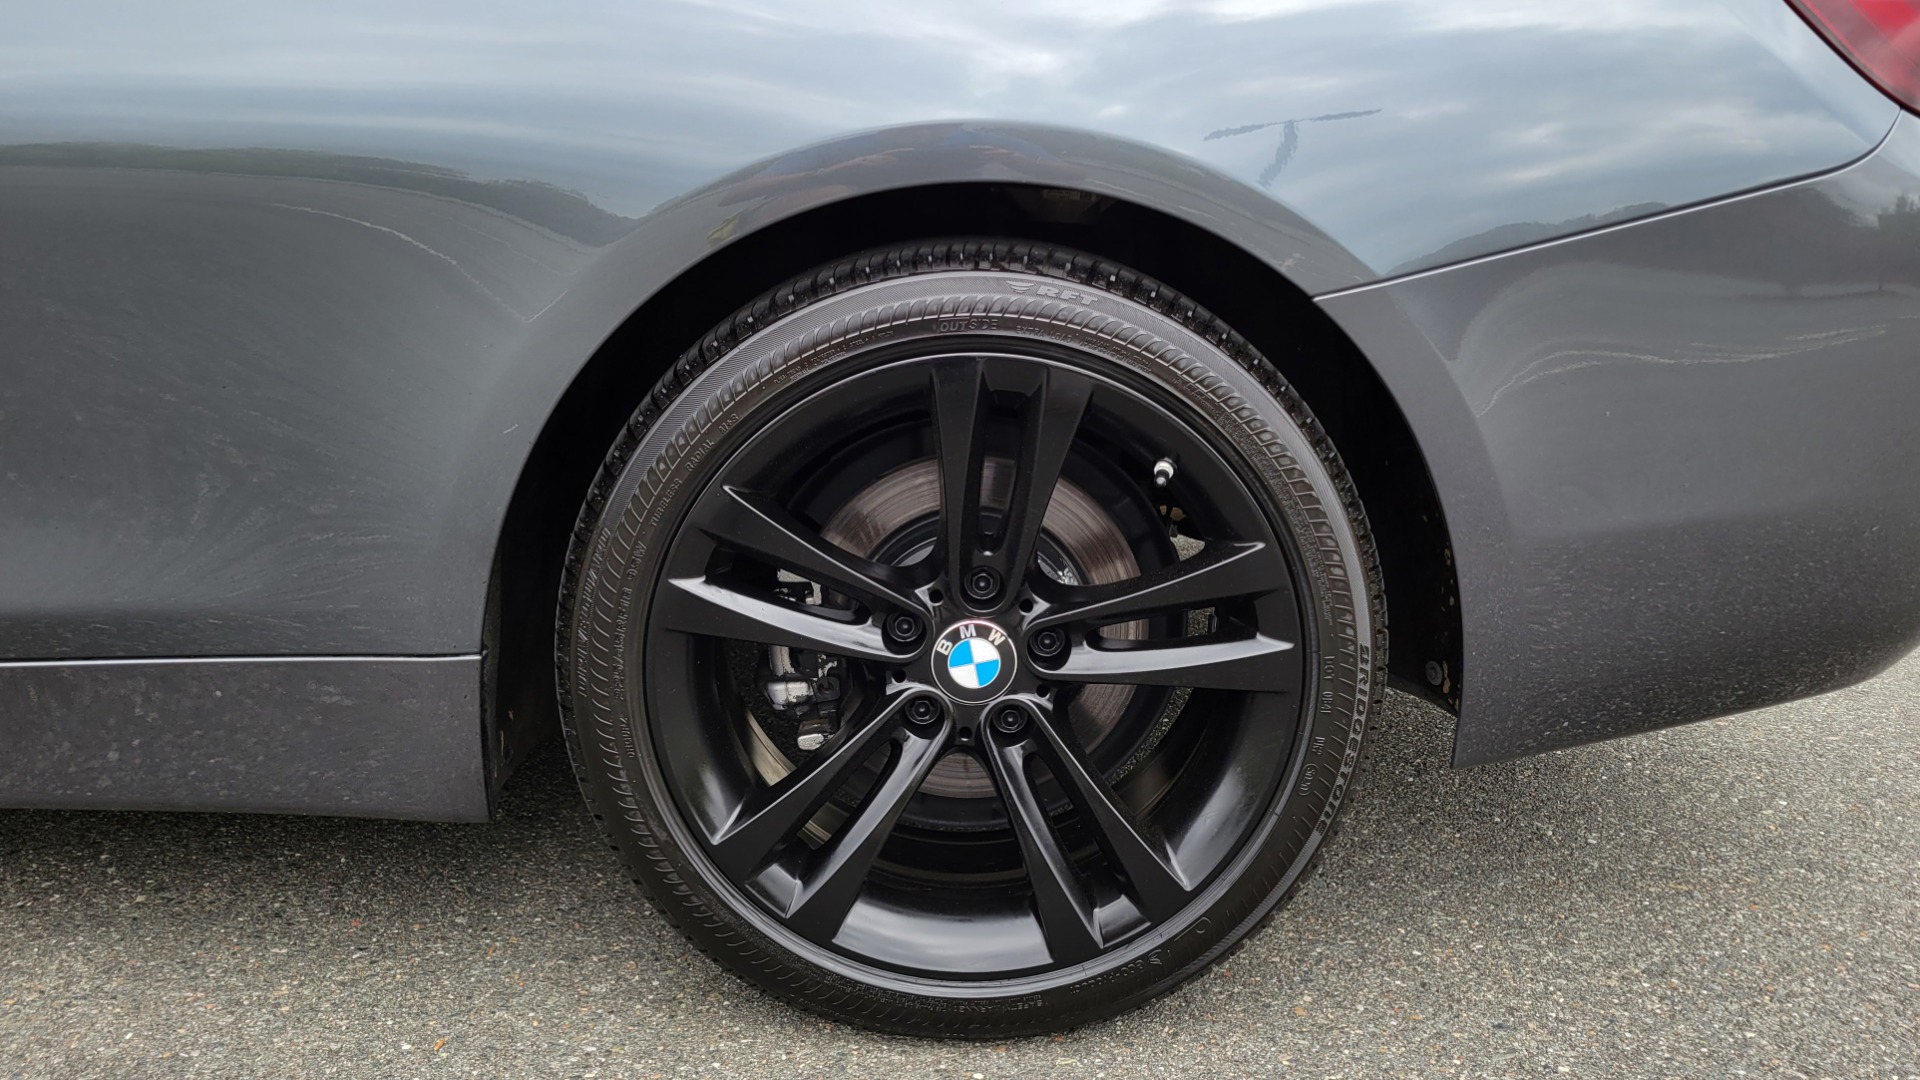 Used 2019 BMW 4 SERIES 430I COUPE 2.0L / RWD / DRVR ASST / CONV PKG / SUNROOF / REARVIEW for sale $32,295 at Formula Imports in Charlotte NC 28227 9